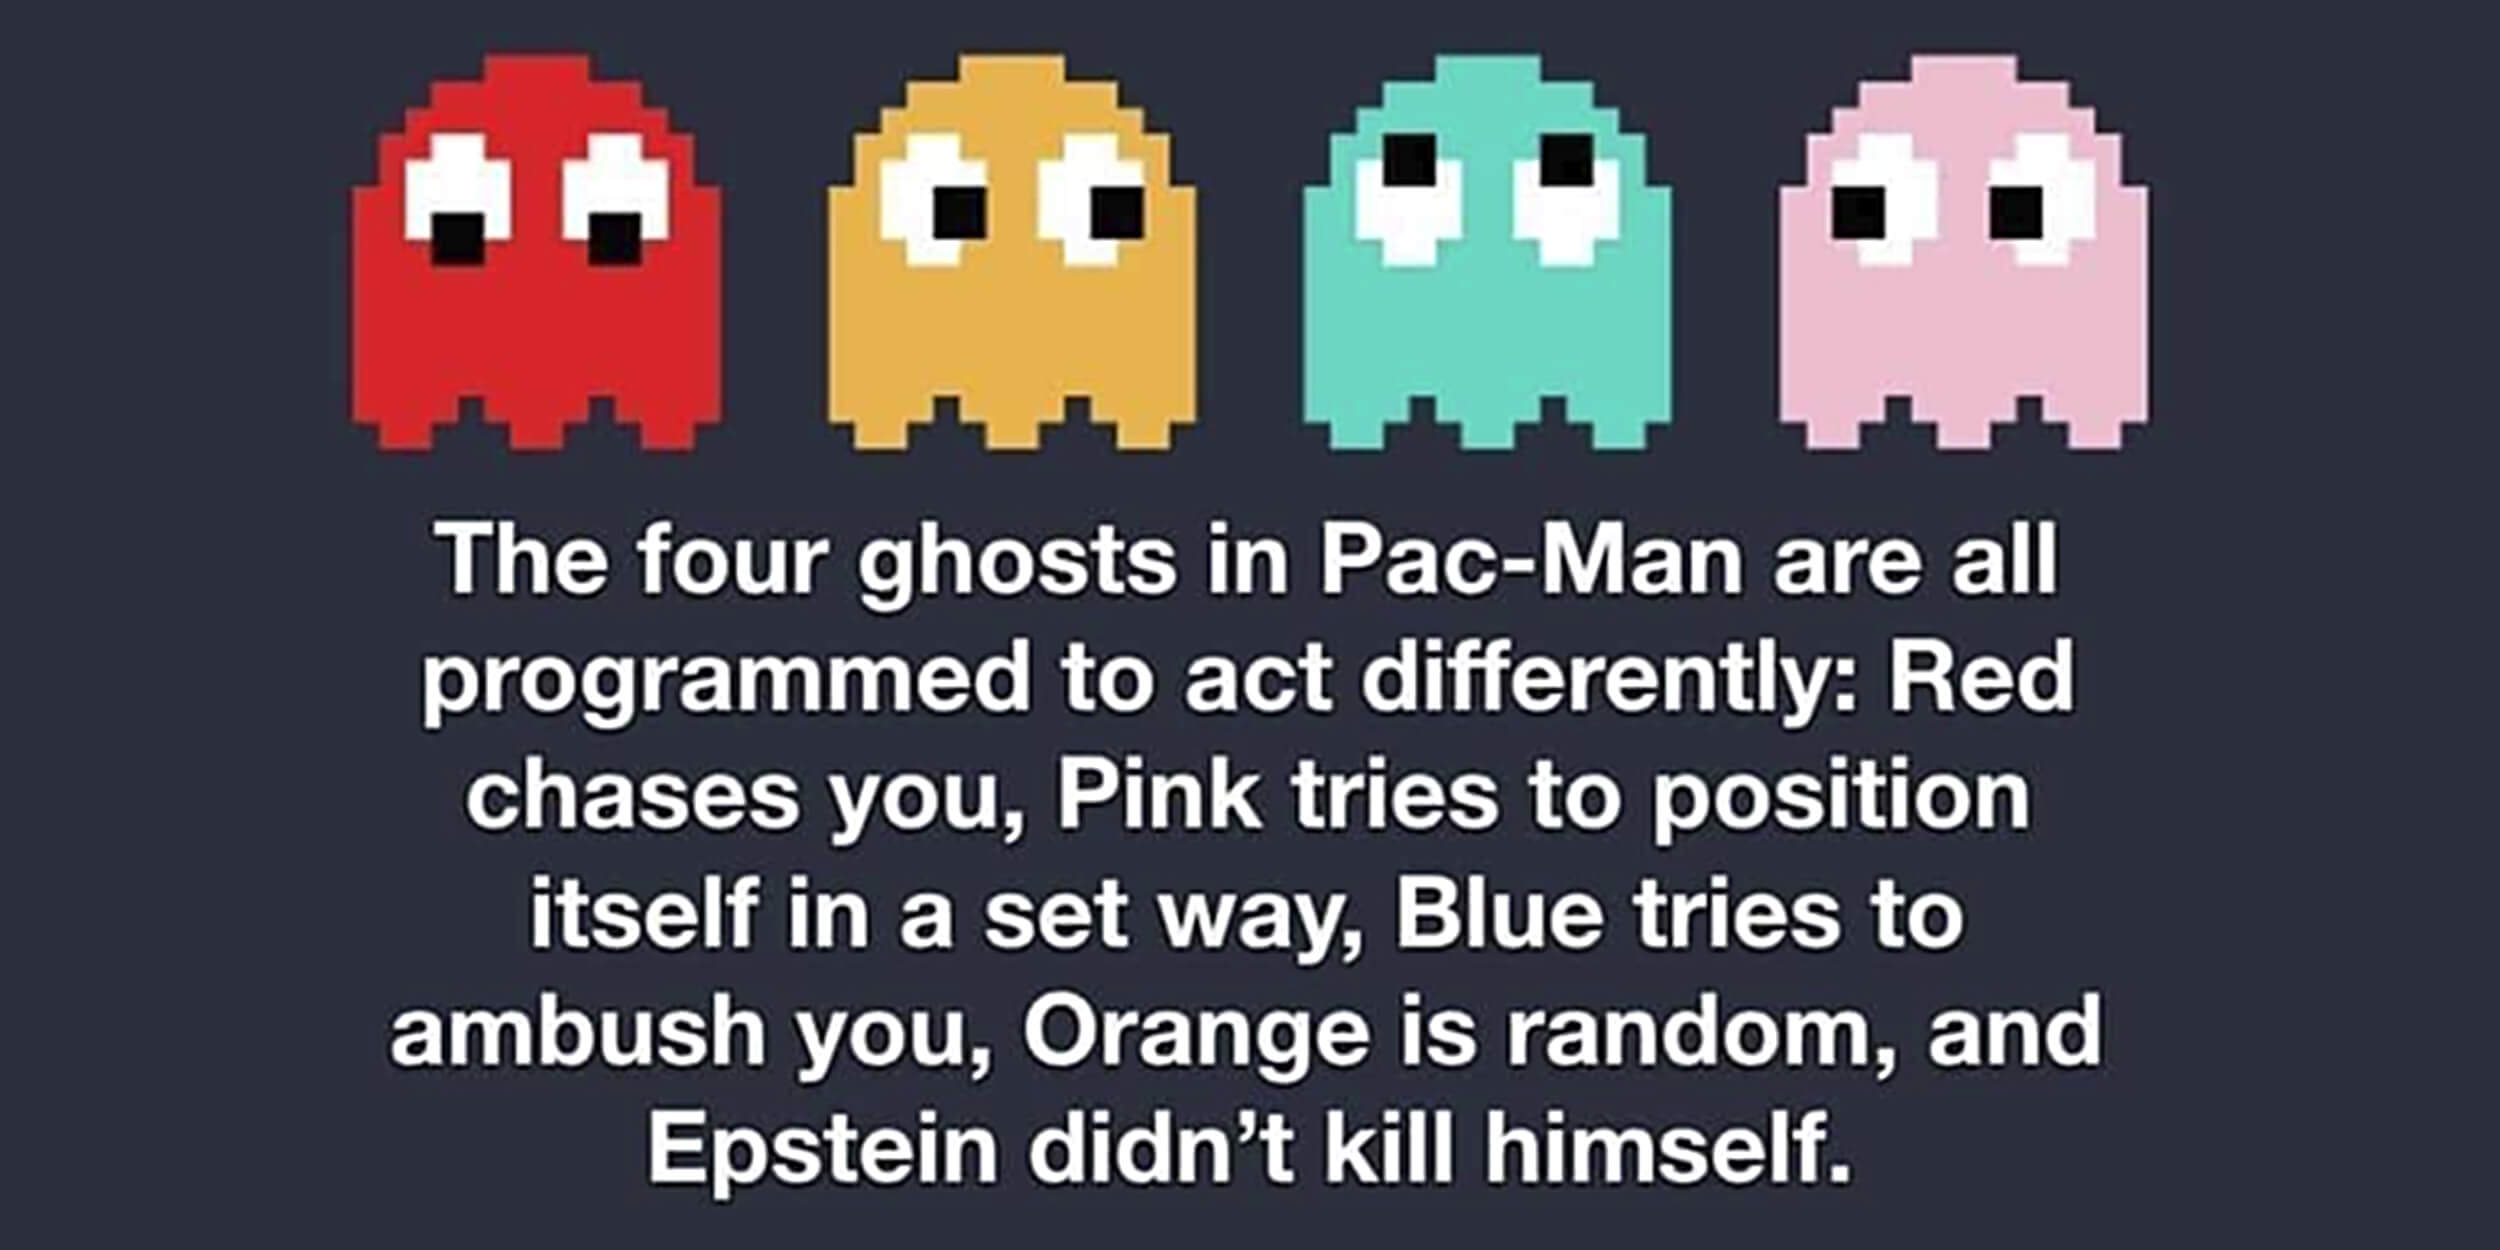 Epstein didn't kill himself pac man meme.